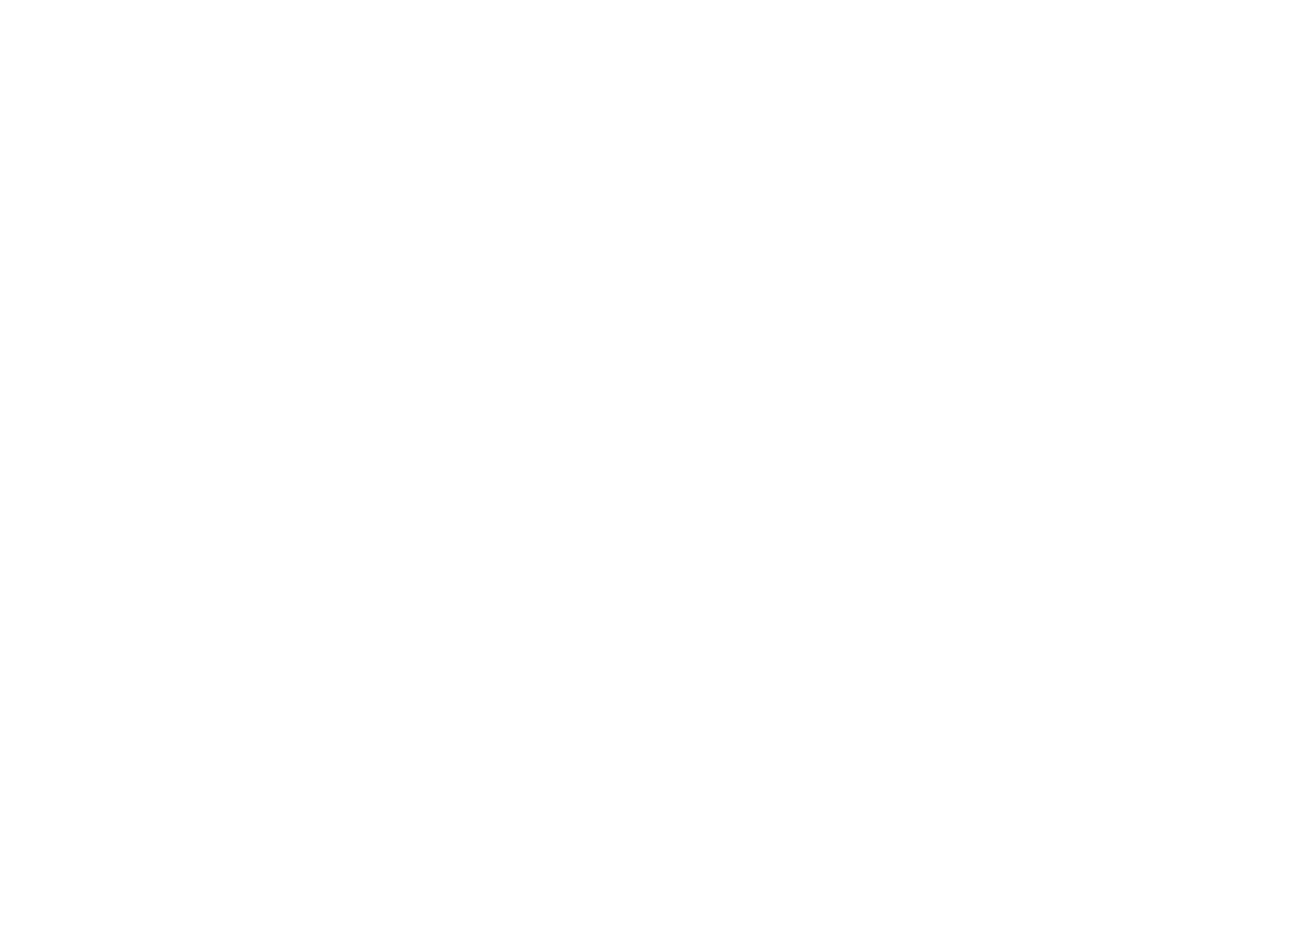 Euroasian Air Services LLC